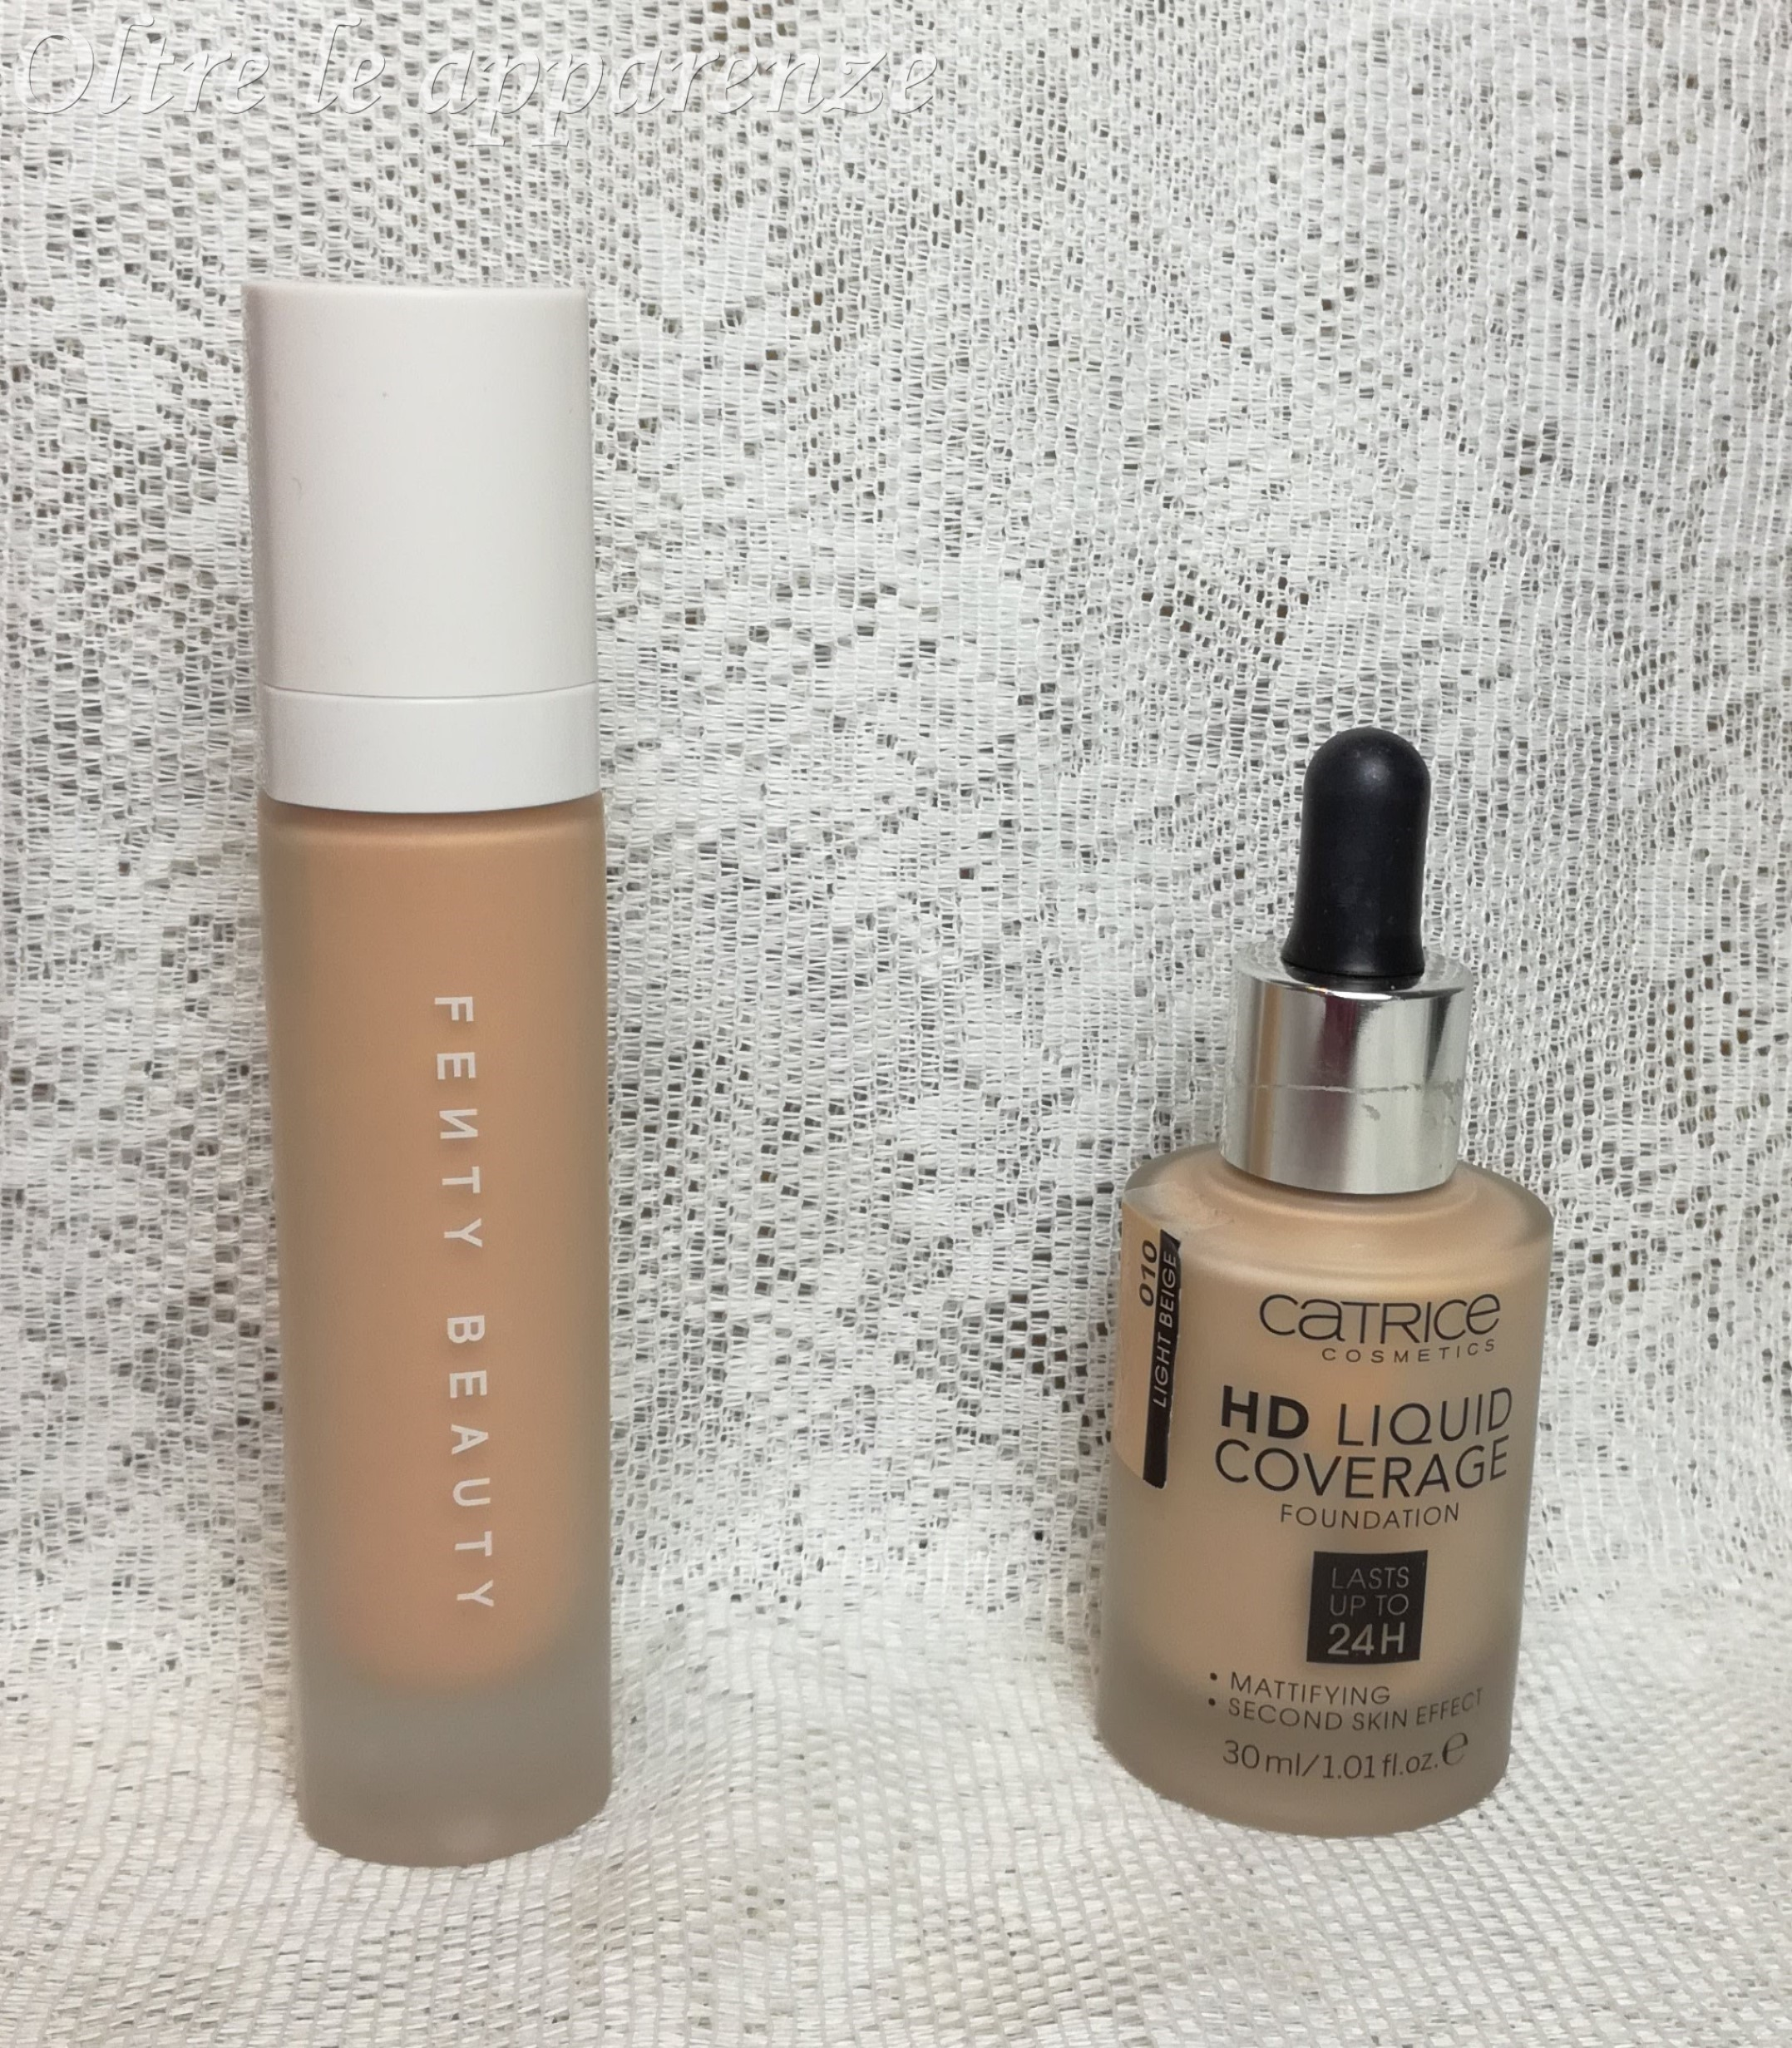 Fenty beauty vs Catrice